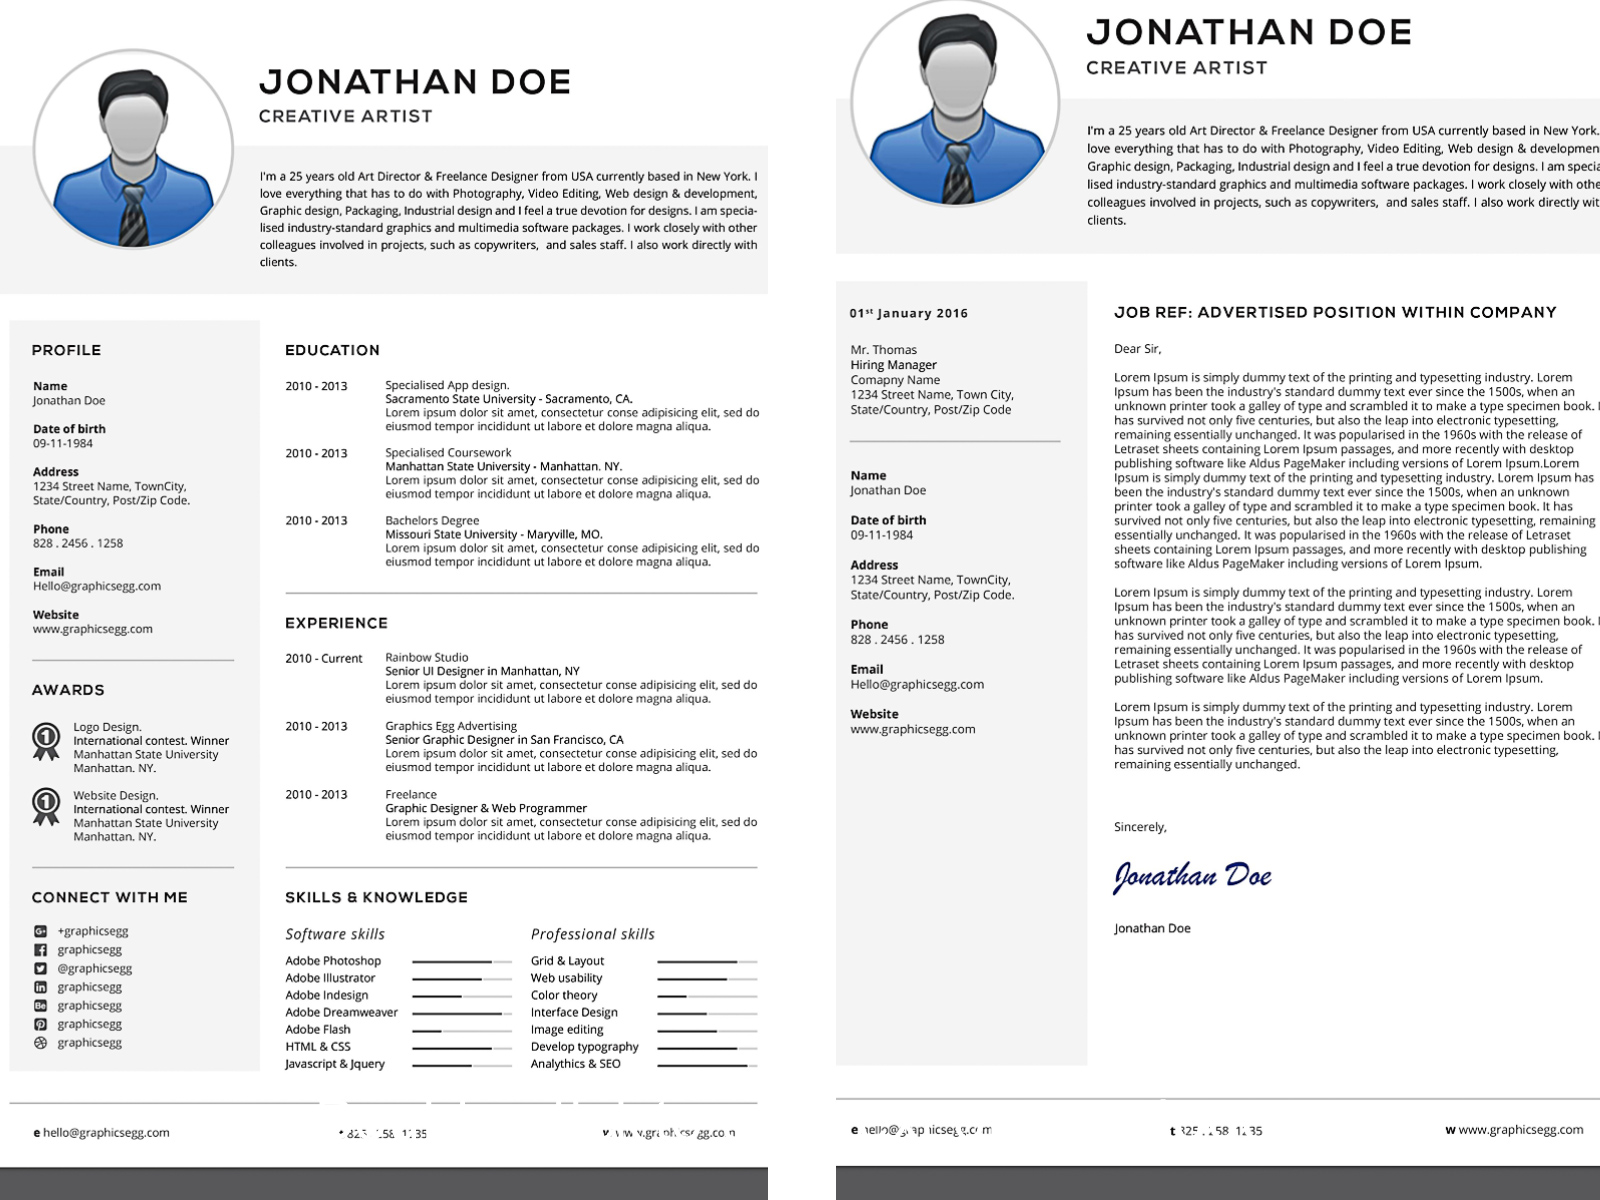 professional resume format in word file resume and cover letter professional resume format in word file careerperfectr resume writing help sample resumes professional resume cover